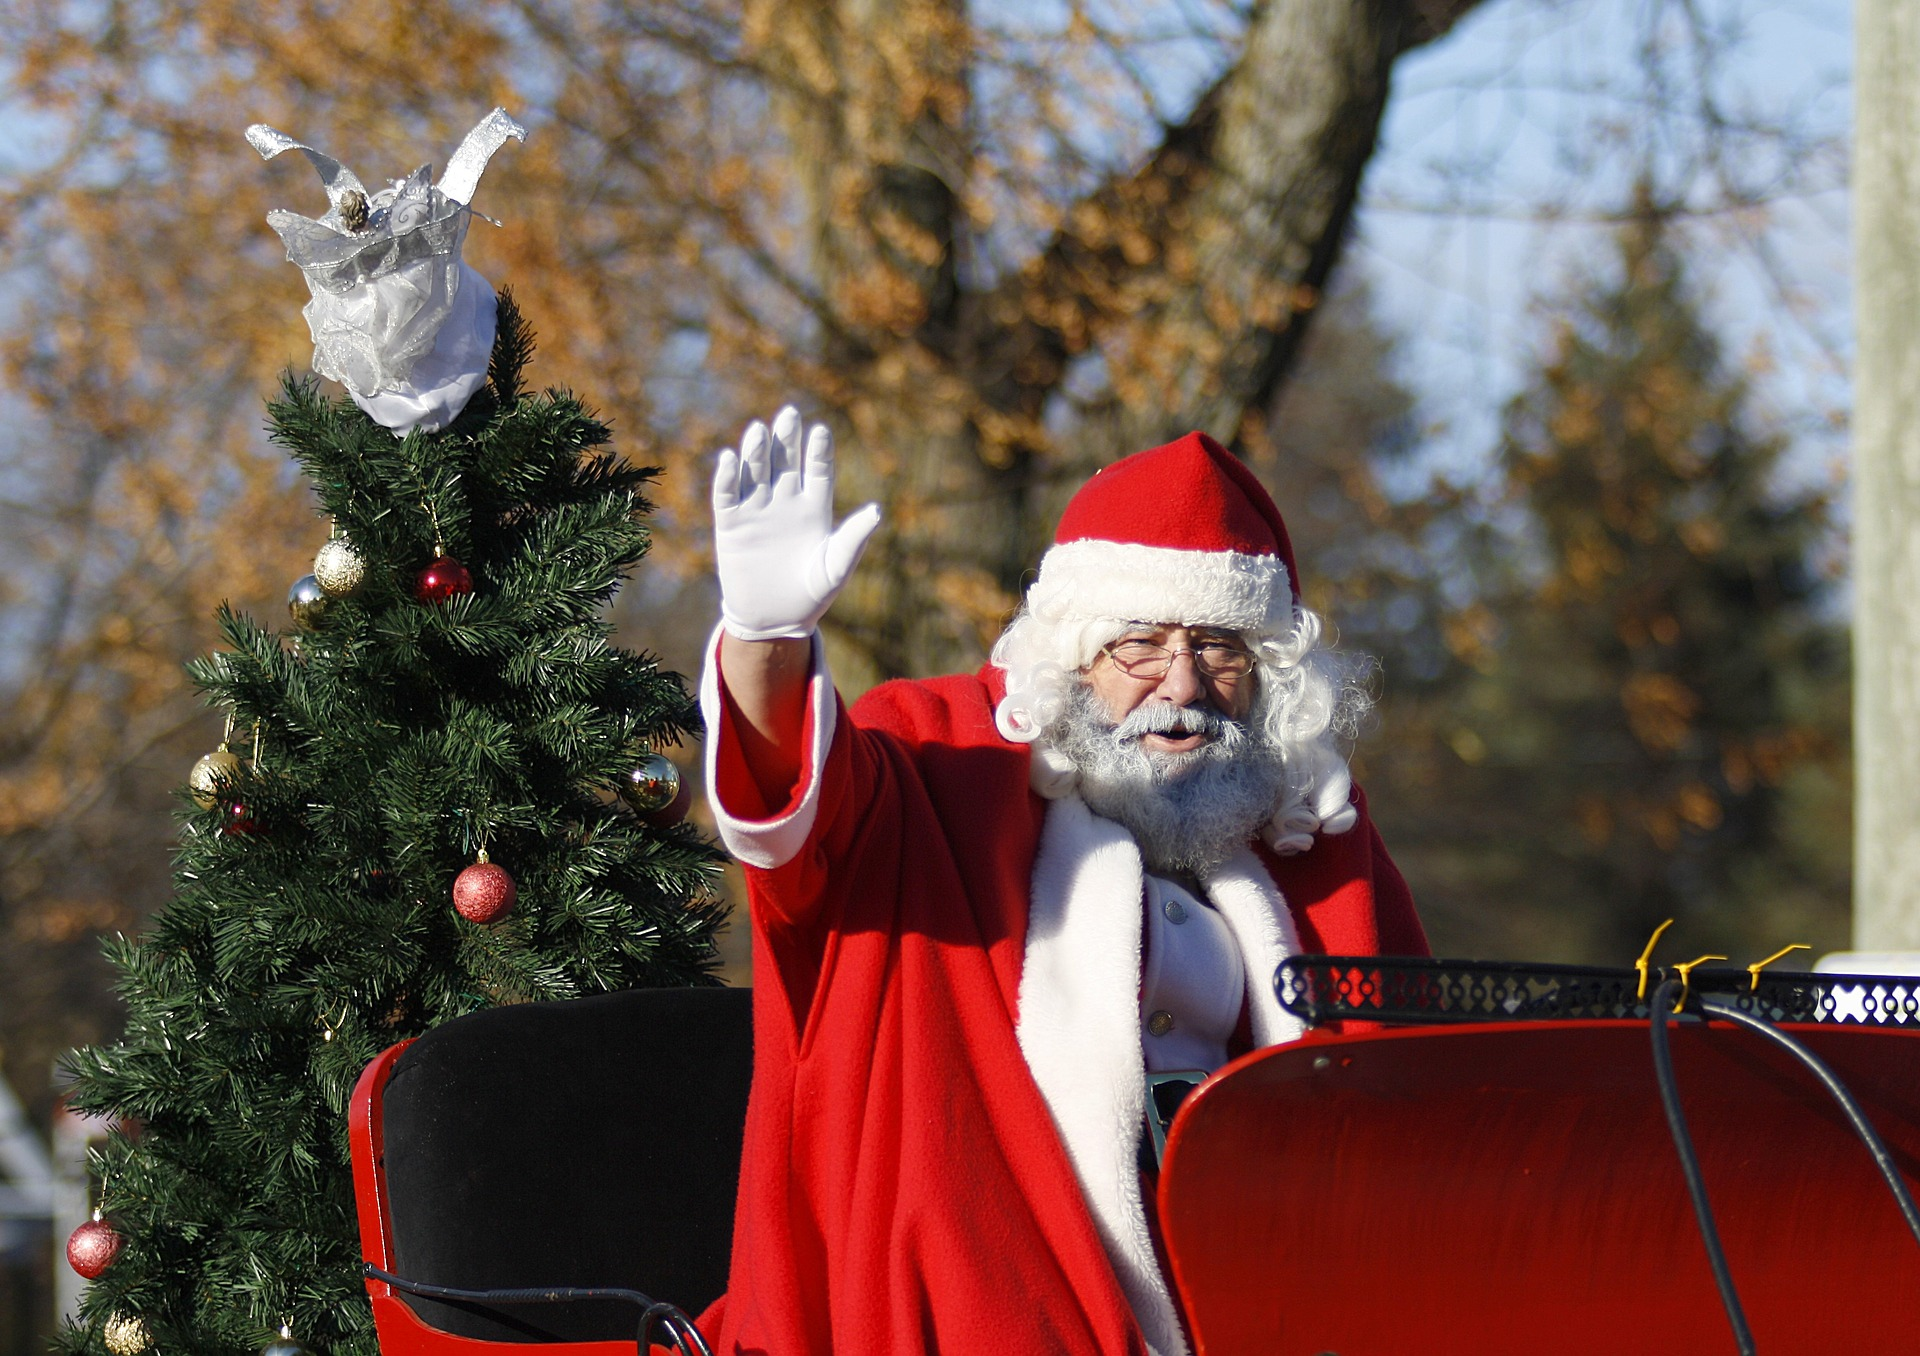 This holiday is controversial because the european settlement in the americas led to the demise of the history and culture of the indigenous peoples. Christmas Season And Holiday Events In Columbus